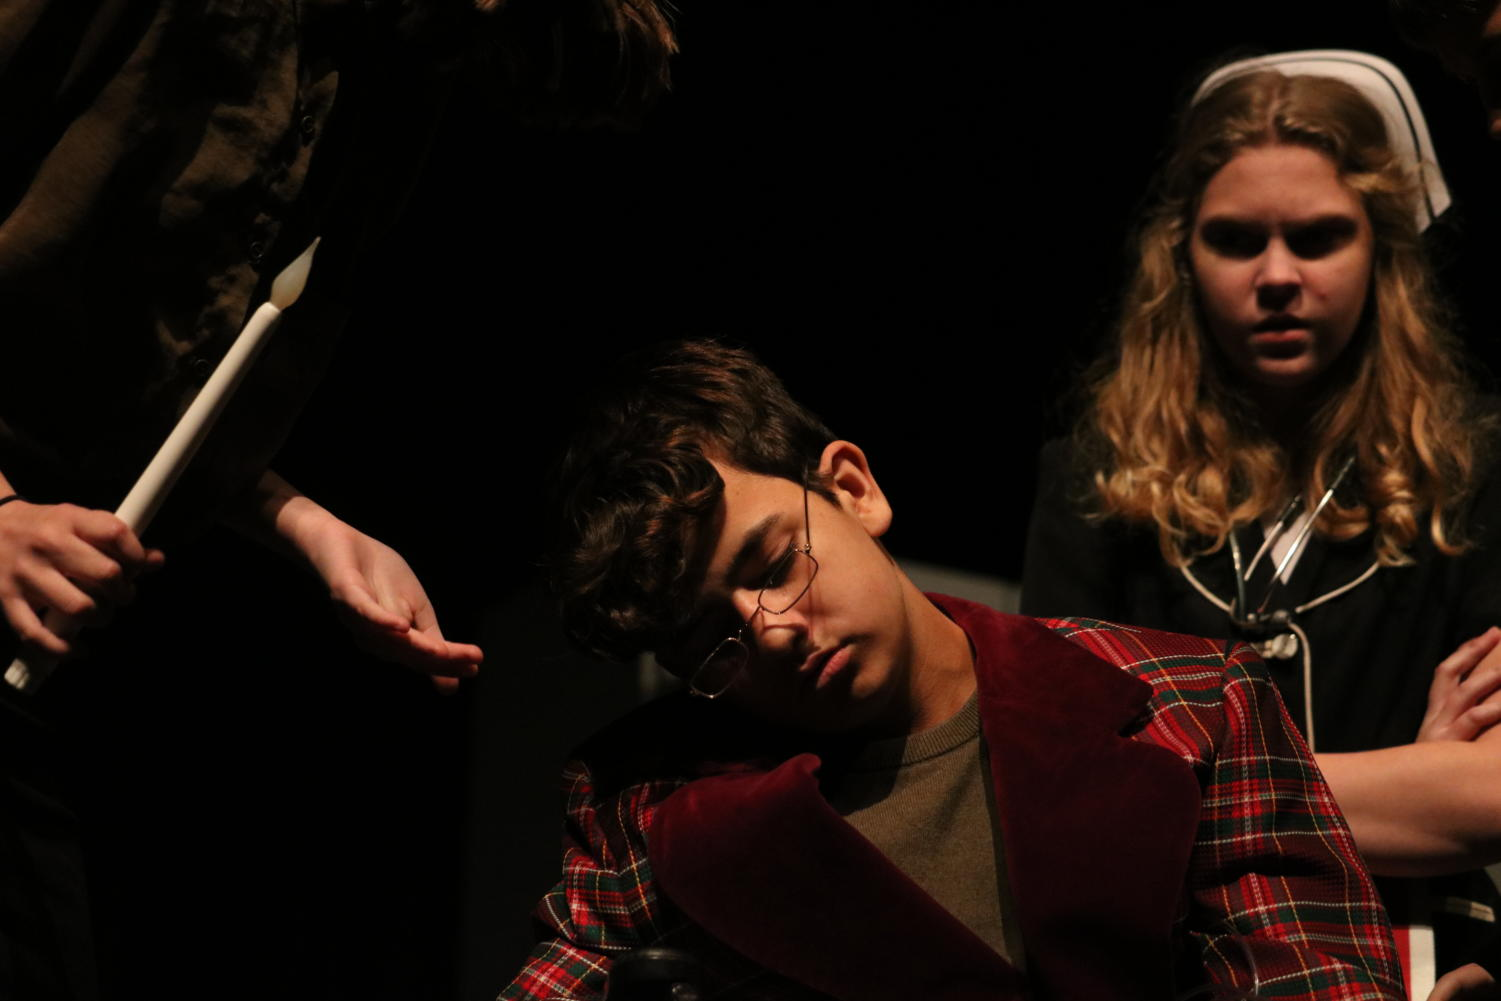 Having just been murdered, freshman Landon Alaniz, playing Simon Starkweather, shocks sophomore Beau Borgmeyer, portraying Miss Withers, during the dress rehearsal for the play